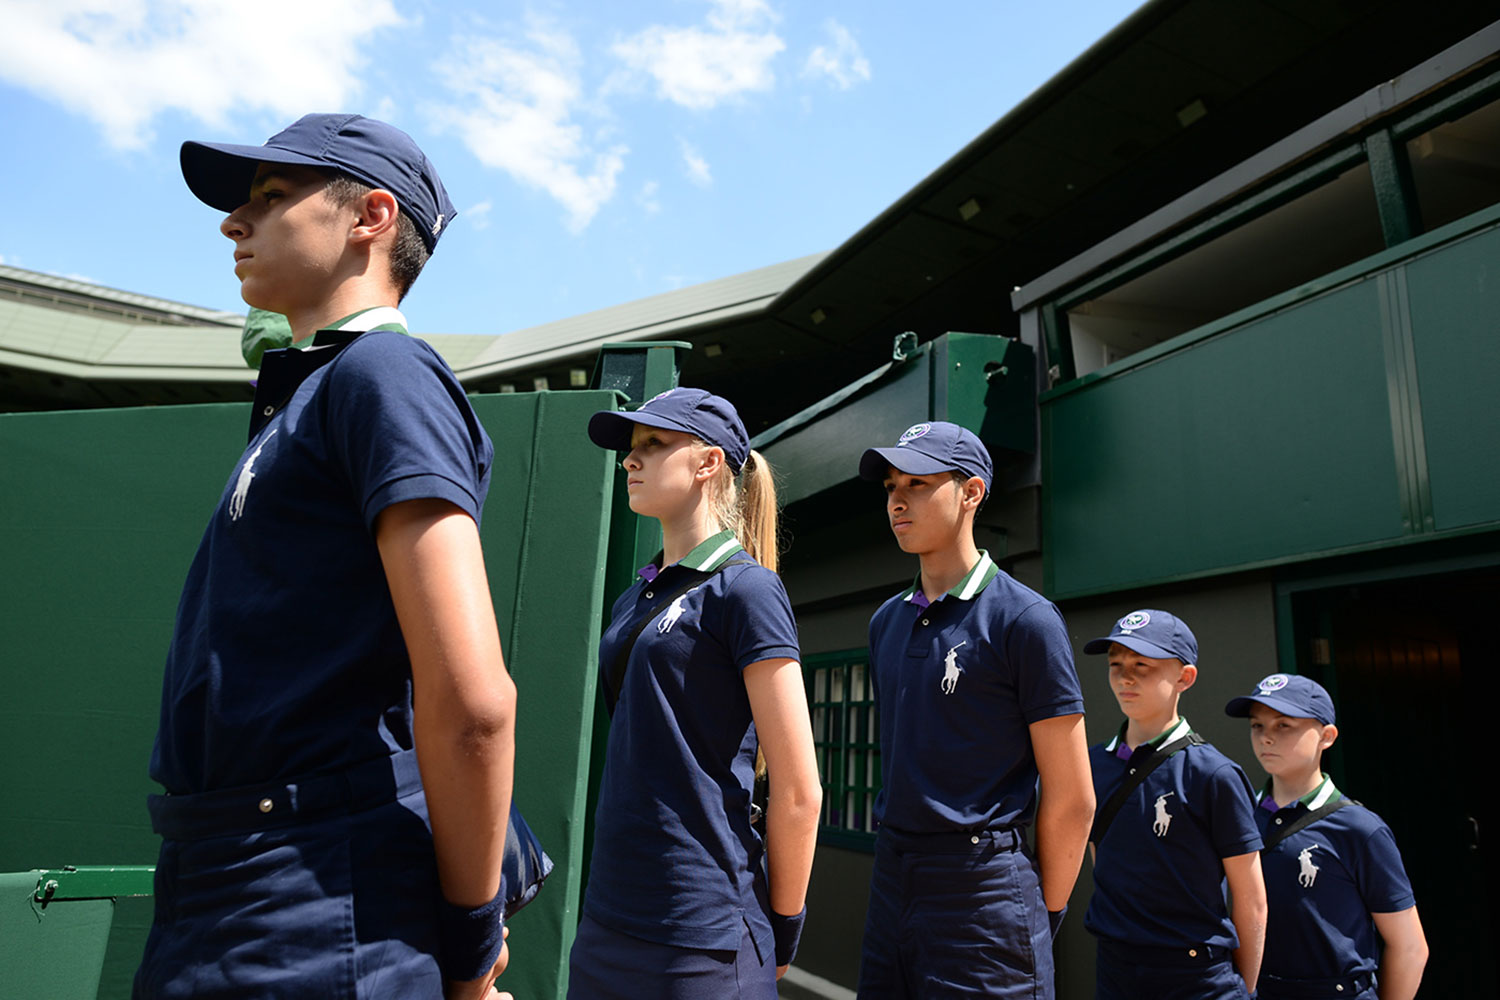 Wimbledon ball boys and girls Ralph Lauren Uniforms